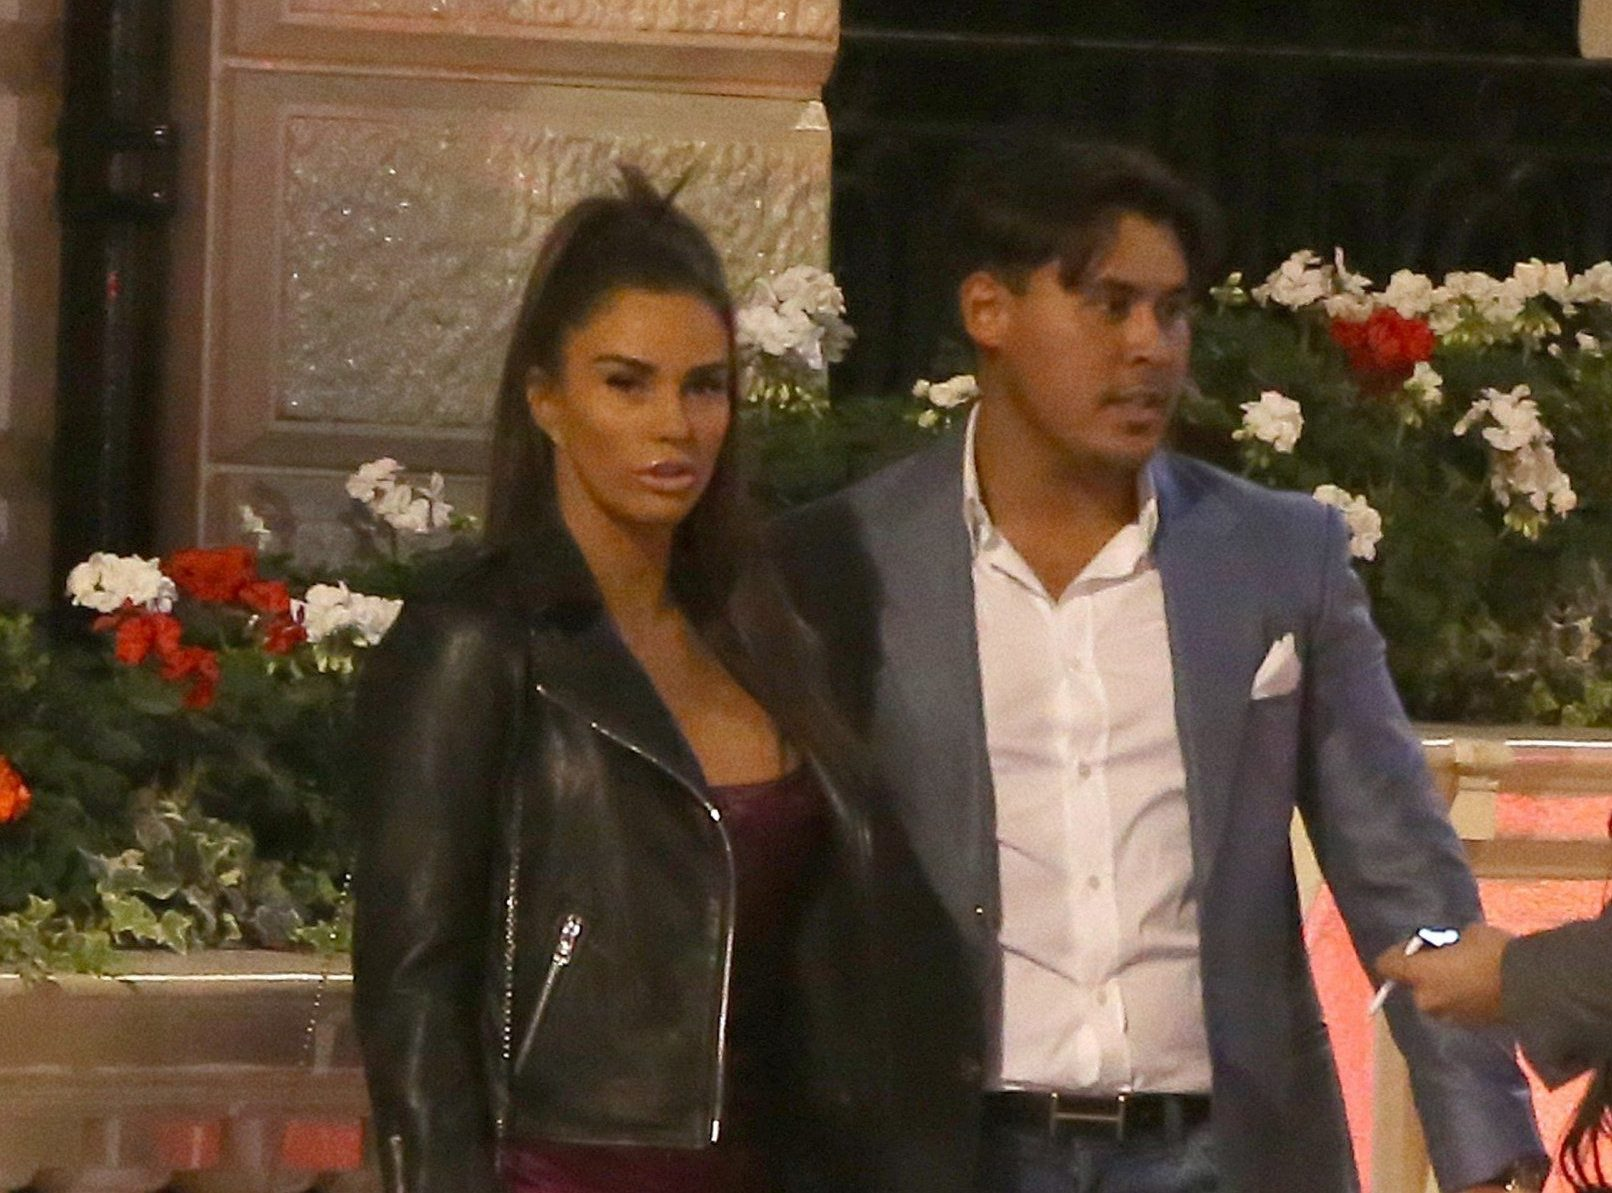 BGUK_1360310 - London, UNITED KINGDOM - Katie Price & Alex Adderson are seen here on a night out in London. Katie & Alex was seen leaving The Mayfair Hotel at 9.30pm and then headed to a near by private house for around half an hour before leaving with a small group of friends and heading to Annabels Private Members Club in Mayfair at 10pm. Katie & Alex left Annabels via the back exit at 2am in a taxi and headded off to collect Katie's Pink Range rover which Alex then Drove Katie home in. Pictured: Katie Price, Alex Adderson BACKGRID UK 5 OCTOBER 2018 BYLINE MUST READ: CRYSTAL PIX / BACKGRID UK: +44 208 344 2007 / uksales@backgrid.com USA: +1 310 798 9111 / usasales@backgrid.com *UK Clients - Pictures Containing Children Please Pixelate Face Prior To Publication*